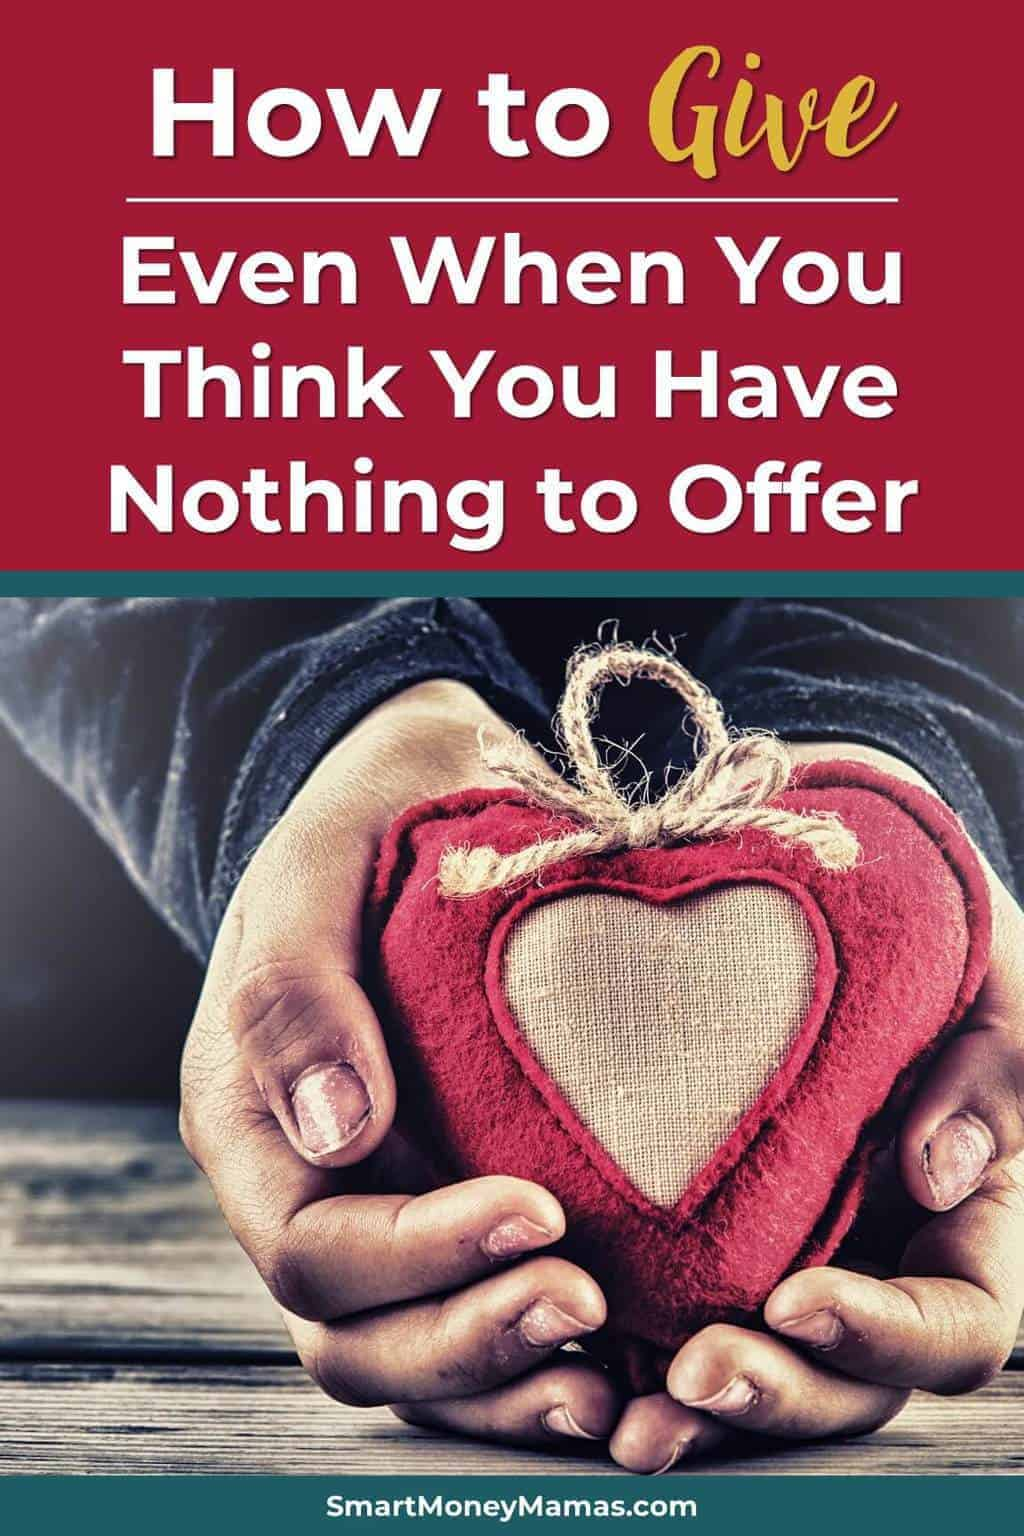 Just in time for the holidays! We really want to support others through giving, but we are struggling financially right now. So many good ideas in here to show our kids the value of giving! #giving #charity #giveback #abundance #holidayseason